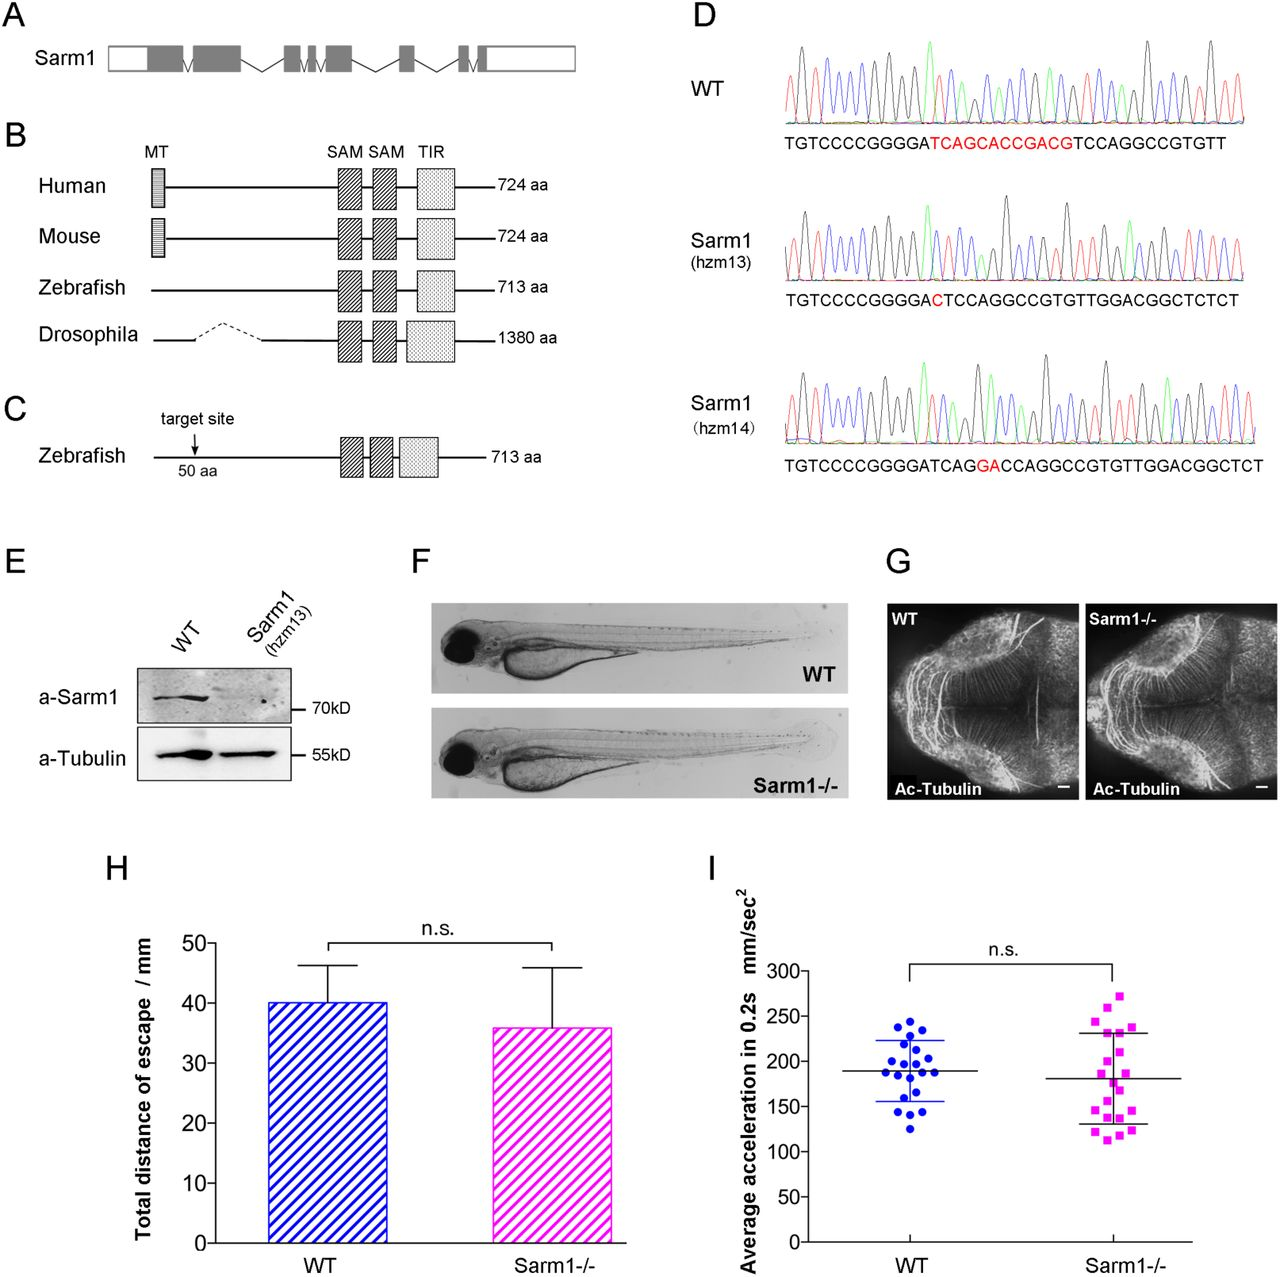 Systemic loss of Sarm1 is glioprotective after neurotrauma